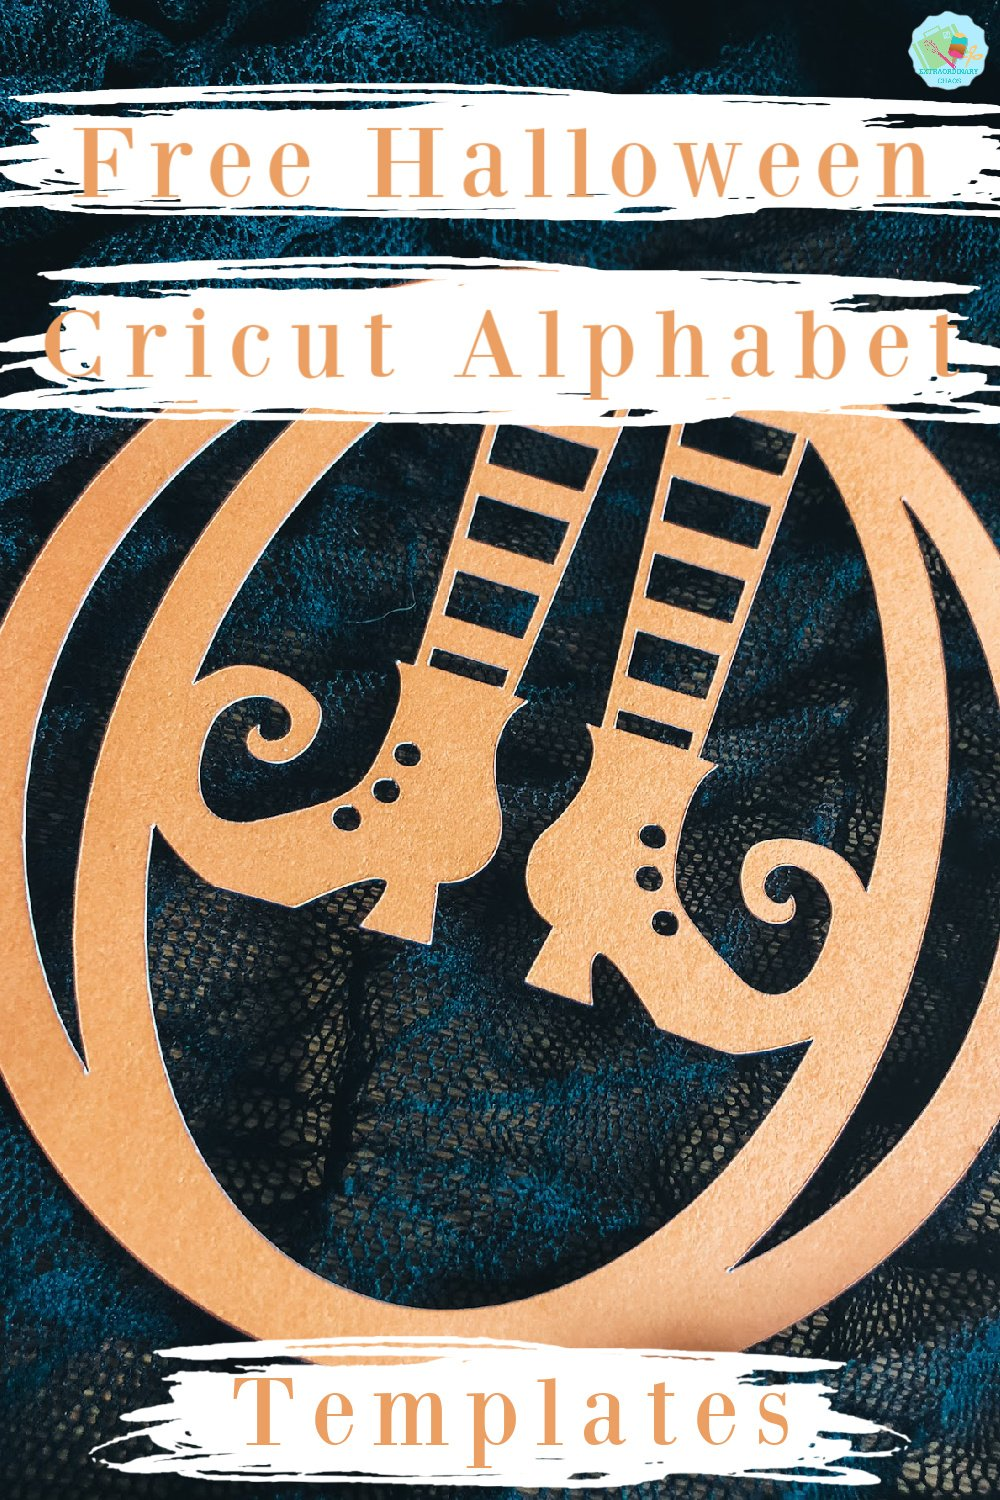 Free Cricut Halloween Alphabet Templates to make as gifts or Halloween Spooky home projects and to sell